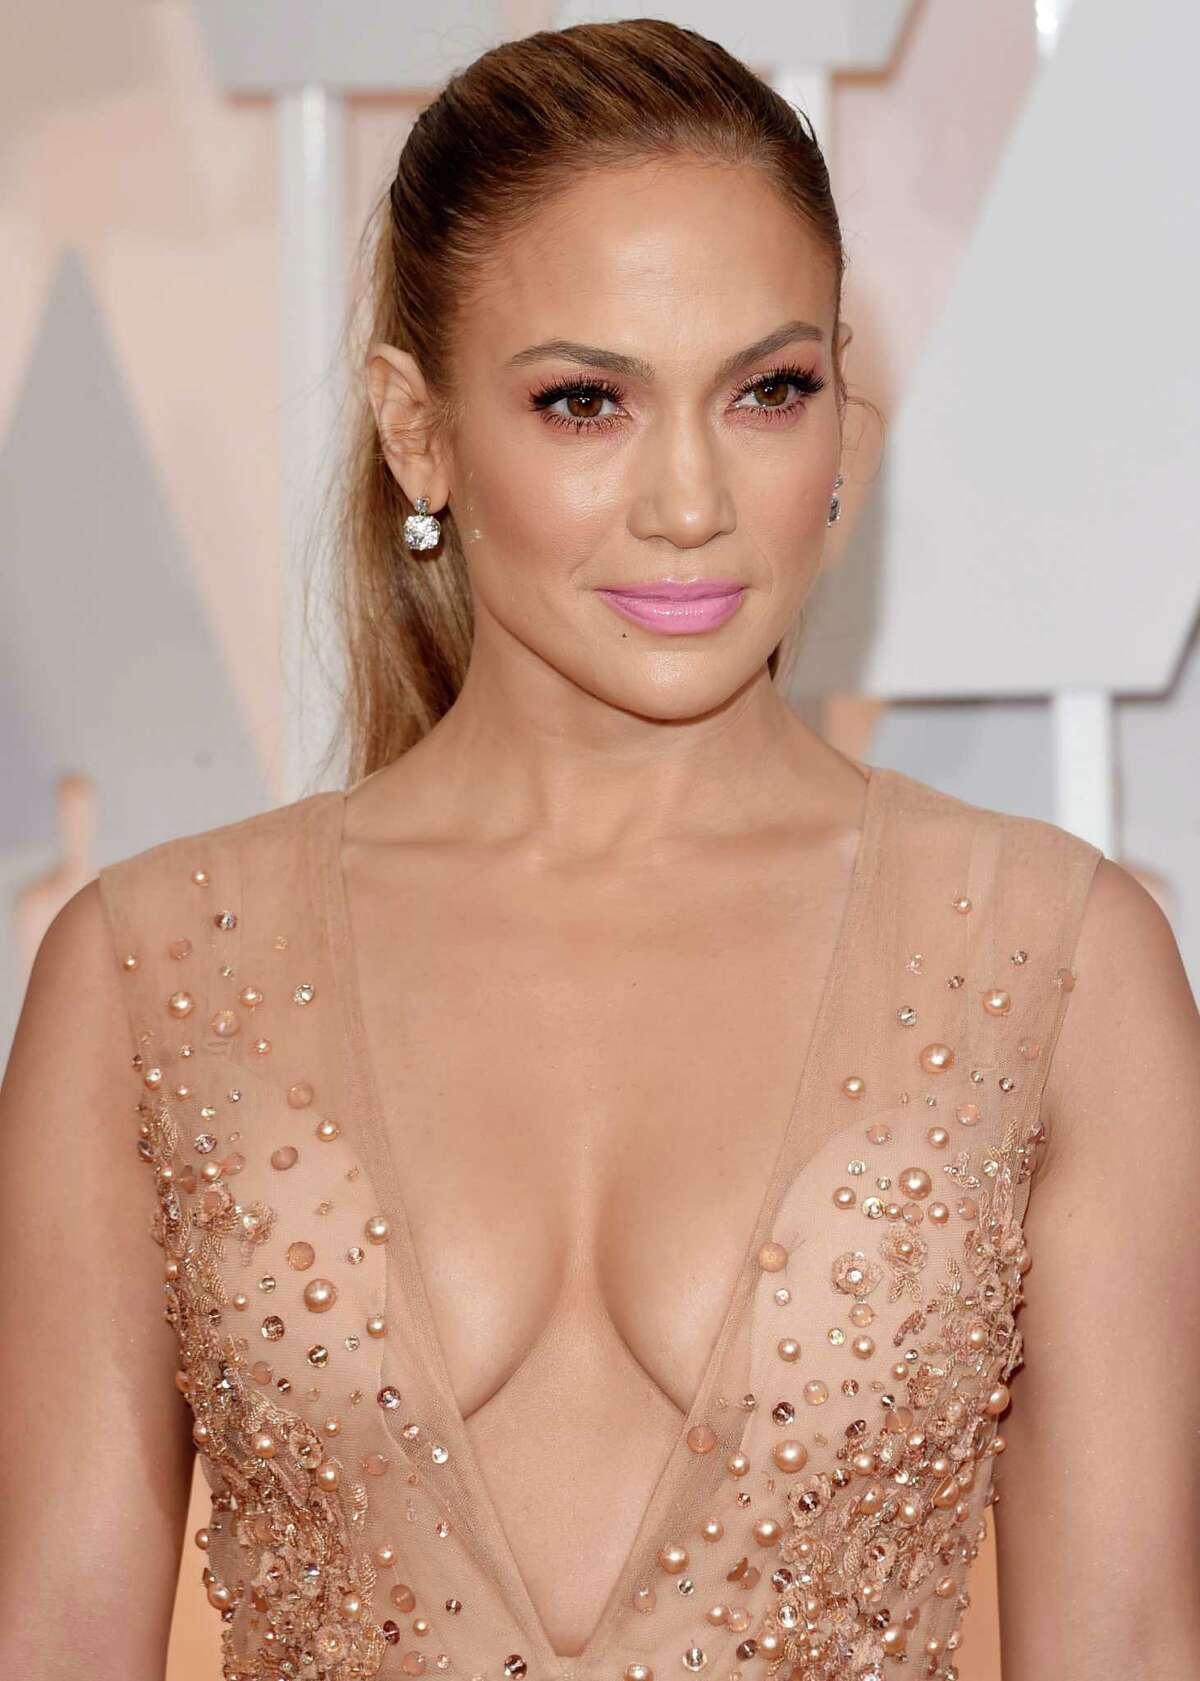 HOLLYWOOD, CA - FEBRUARY 22: Actress Jennifer Lopez attends the 87th Annual Academy Awards at Hollywood & Highland Center on February 22, 2015 in Hollywood, California.